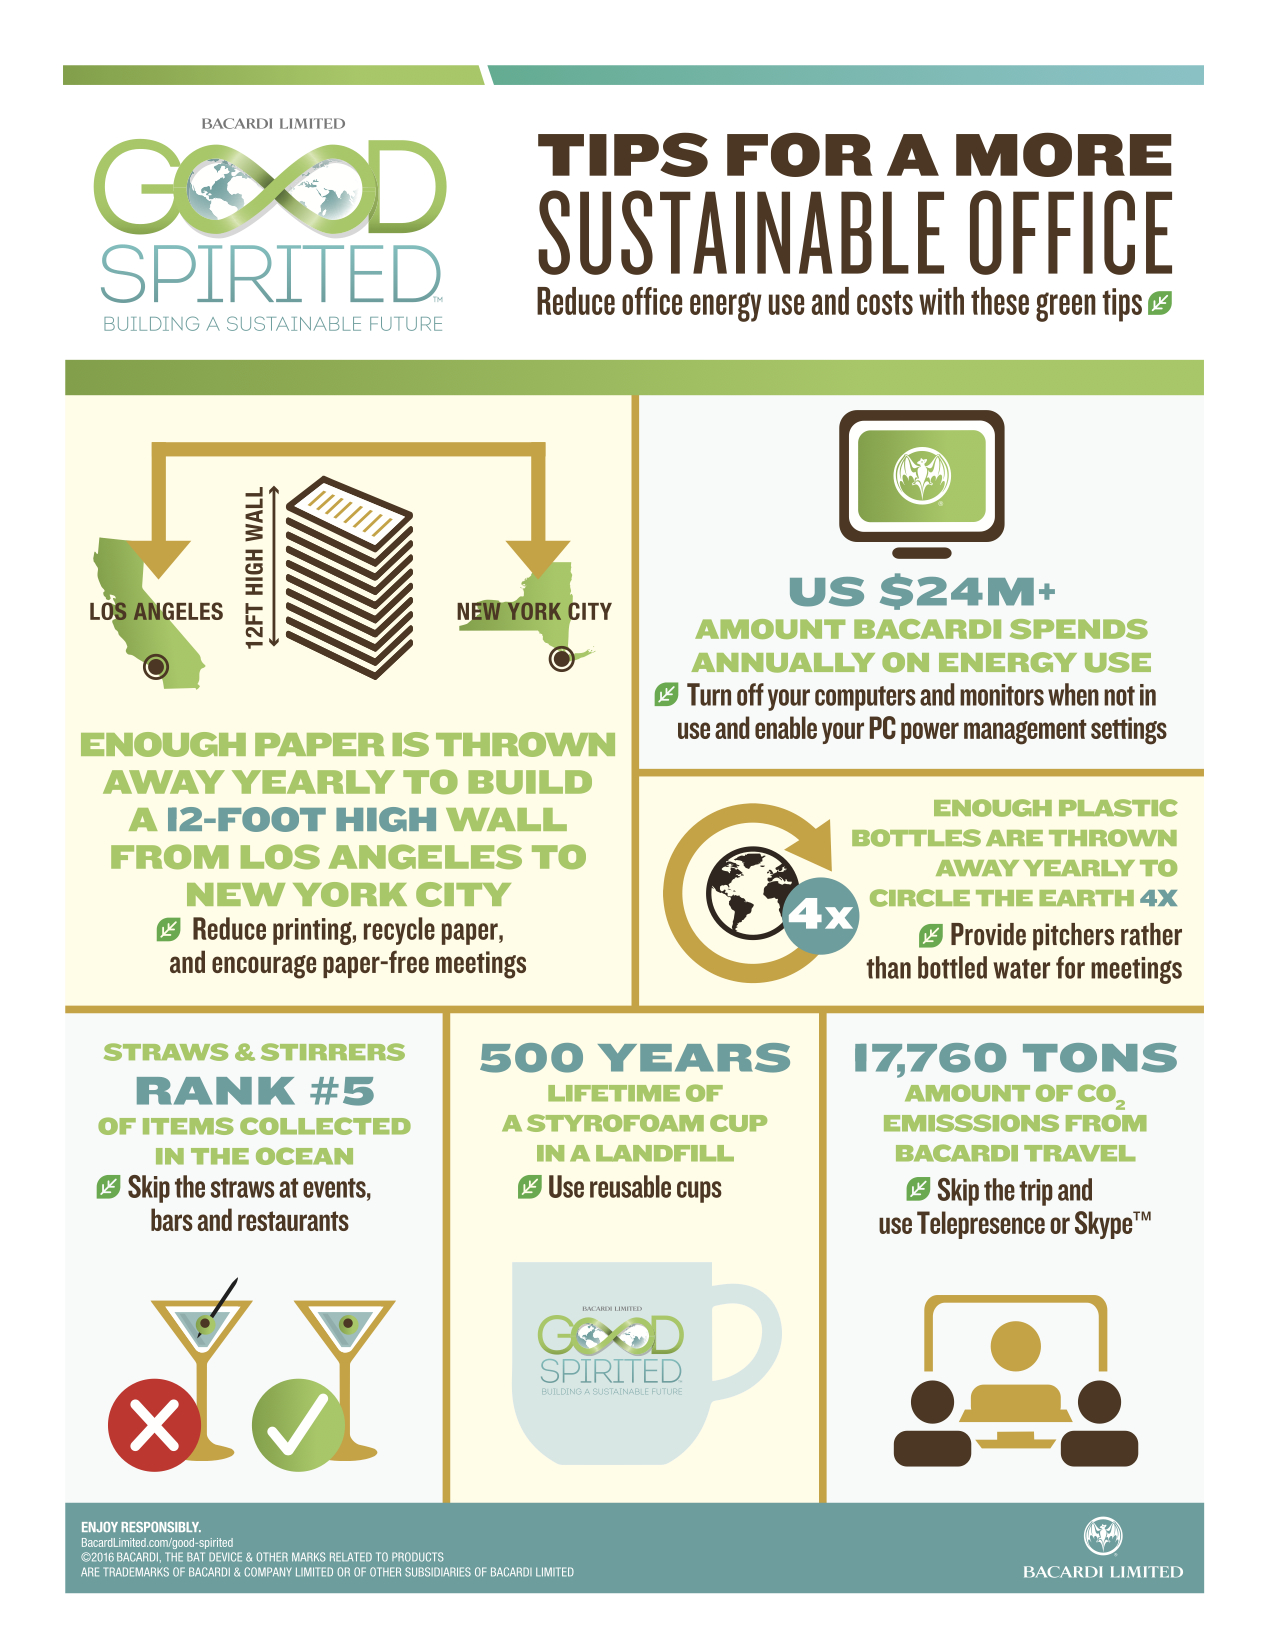 Bacardi Good Spirited Tips For A More Sustainable Office